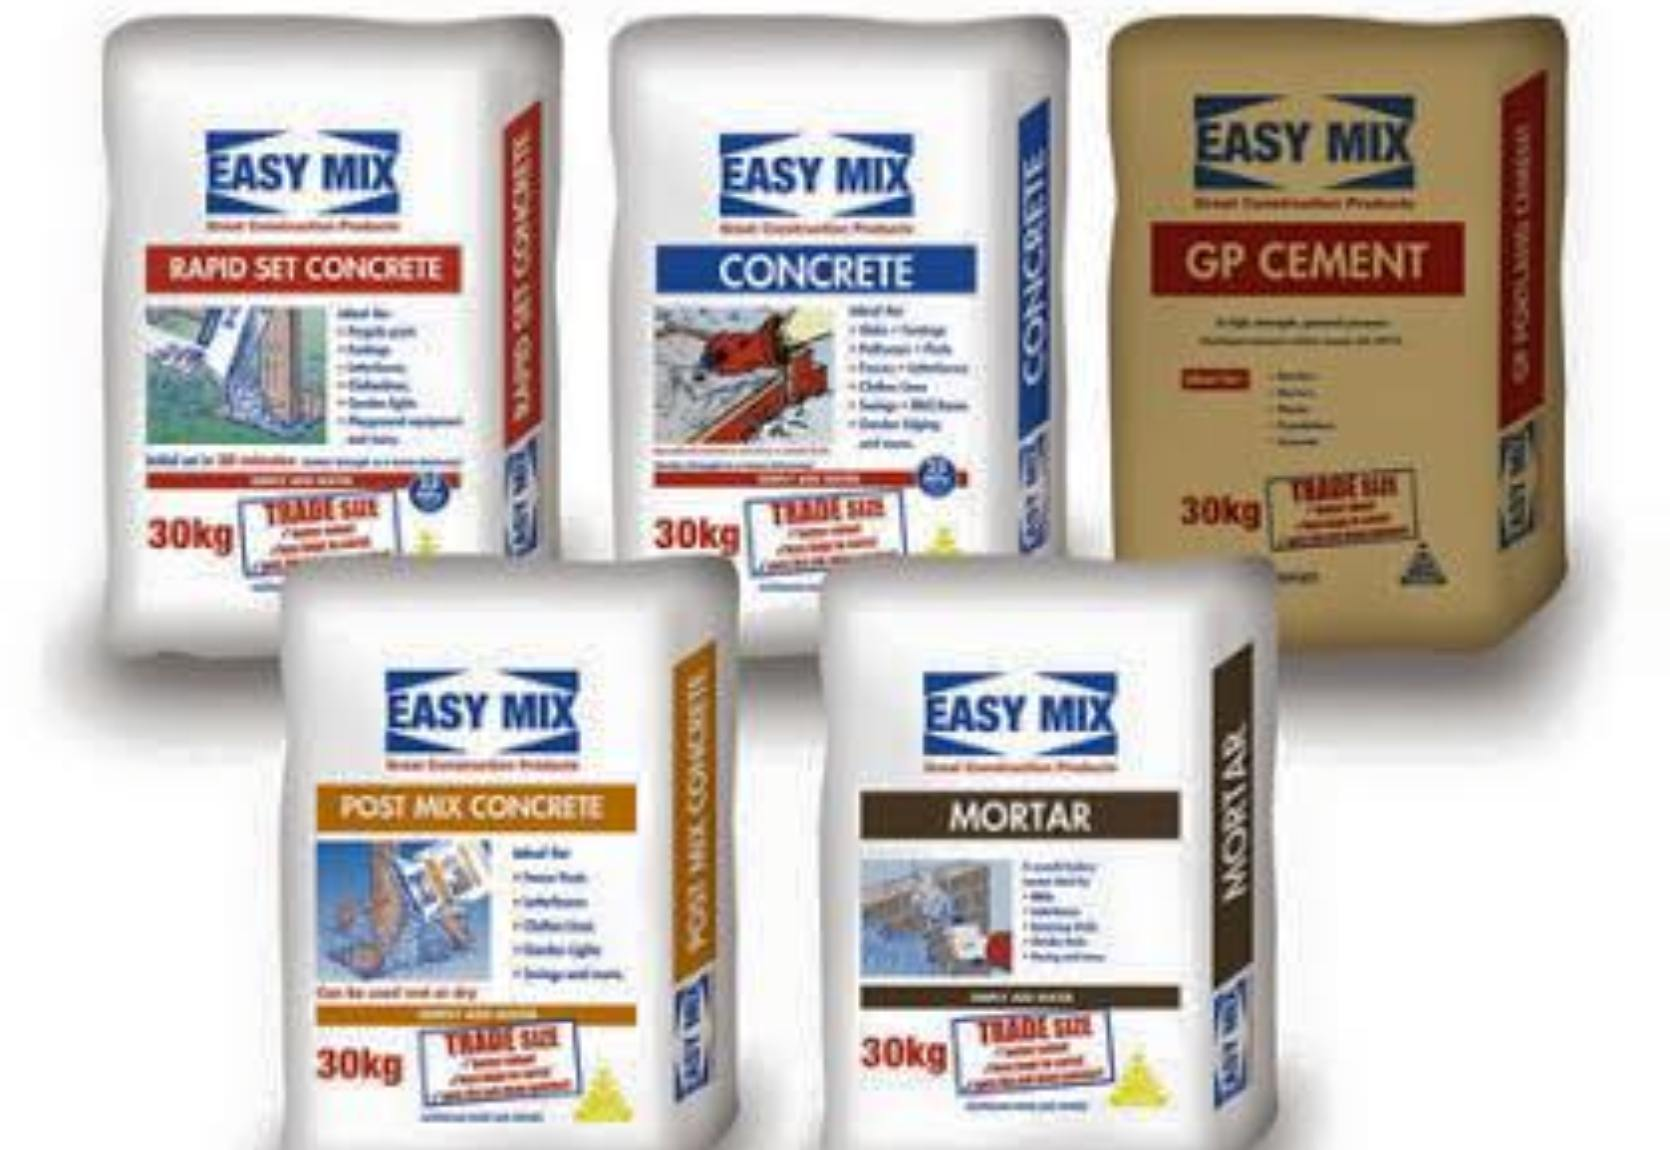 Easy Mix 20kg GP Cement, Rapid Set Concrete, & Post Mix.jpg